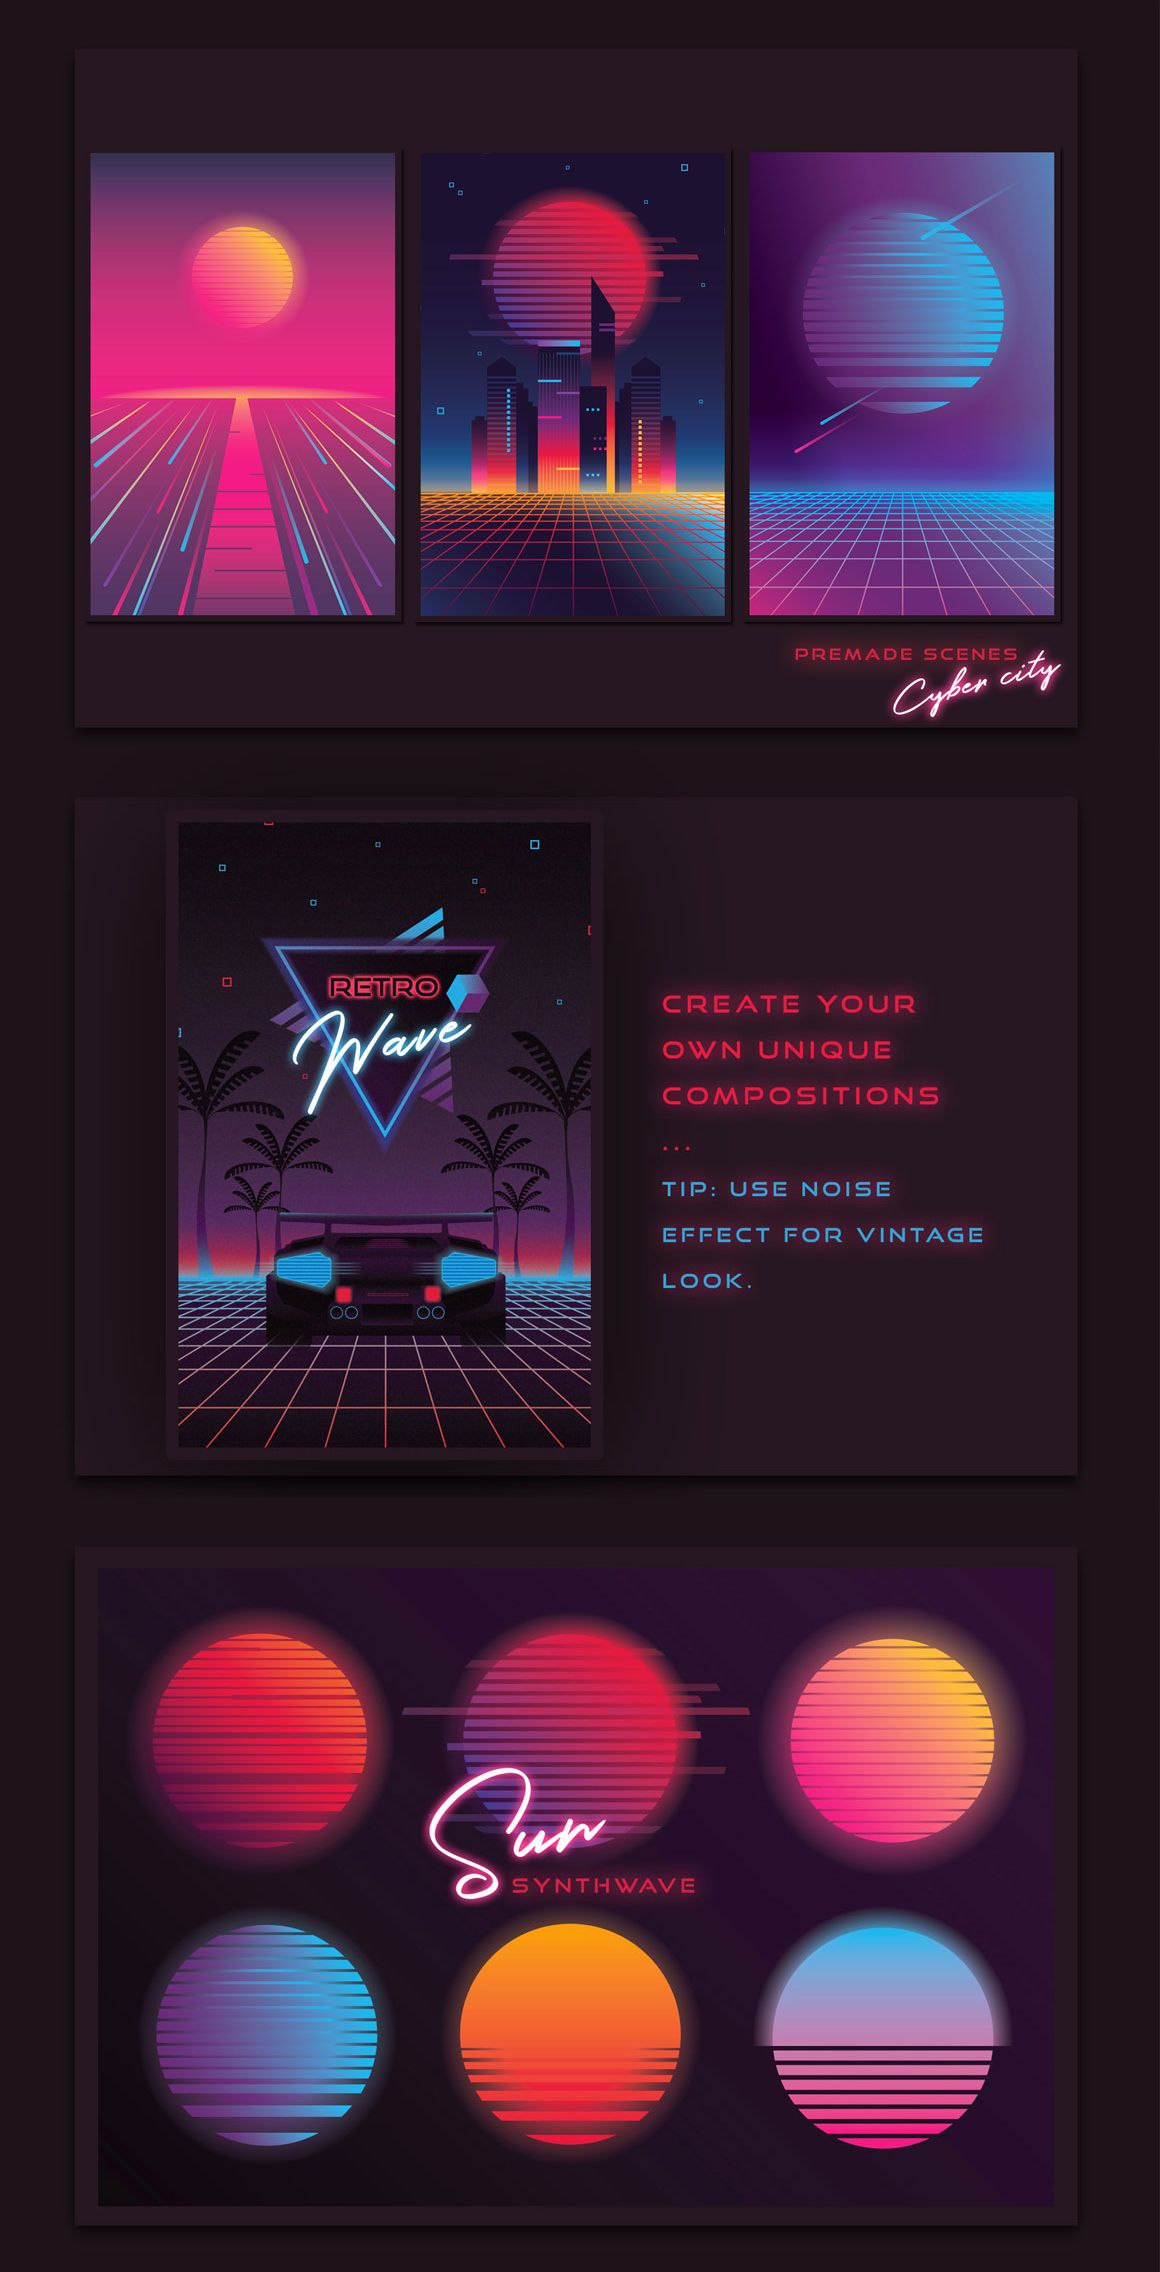 1980s Synthwave Toolkit - Over 80 retro elements - Create your own Synth scenes!